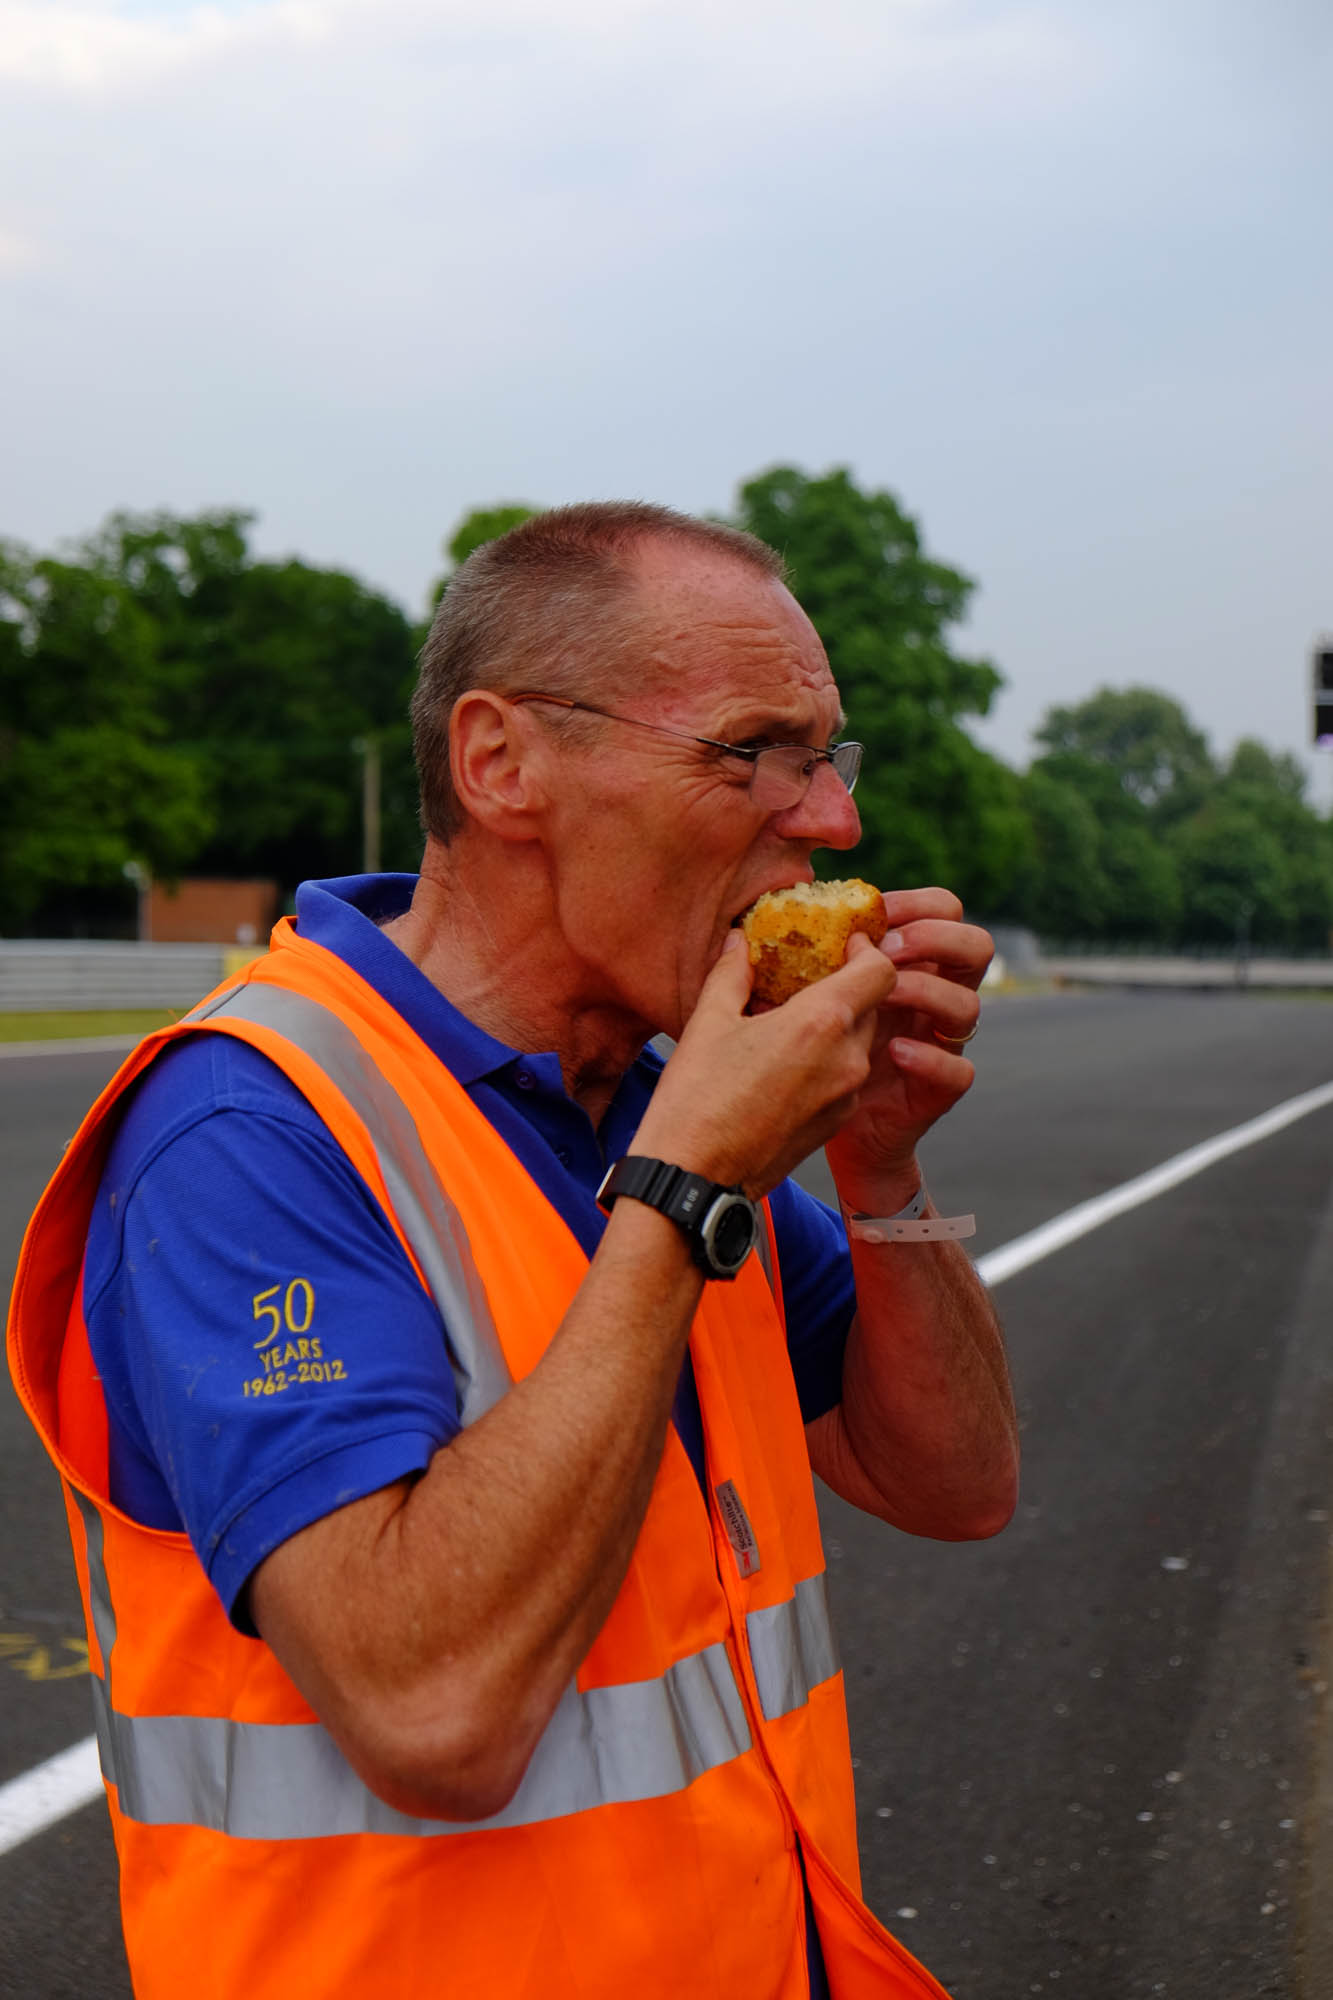 Alan busy fuelling up for the event